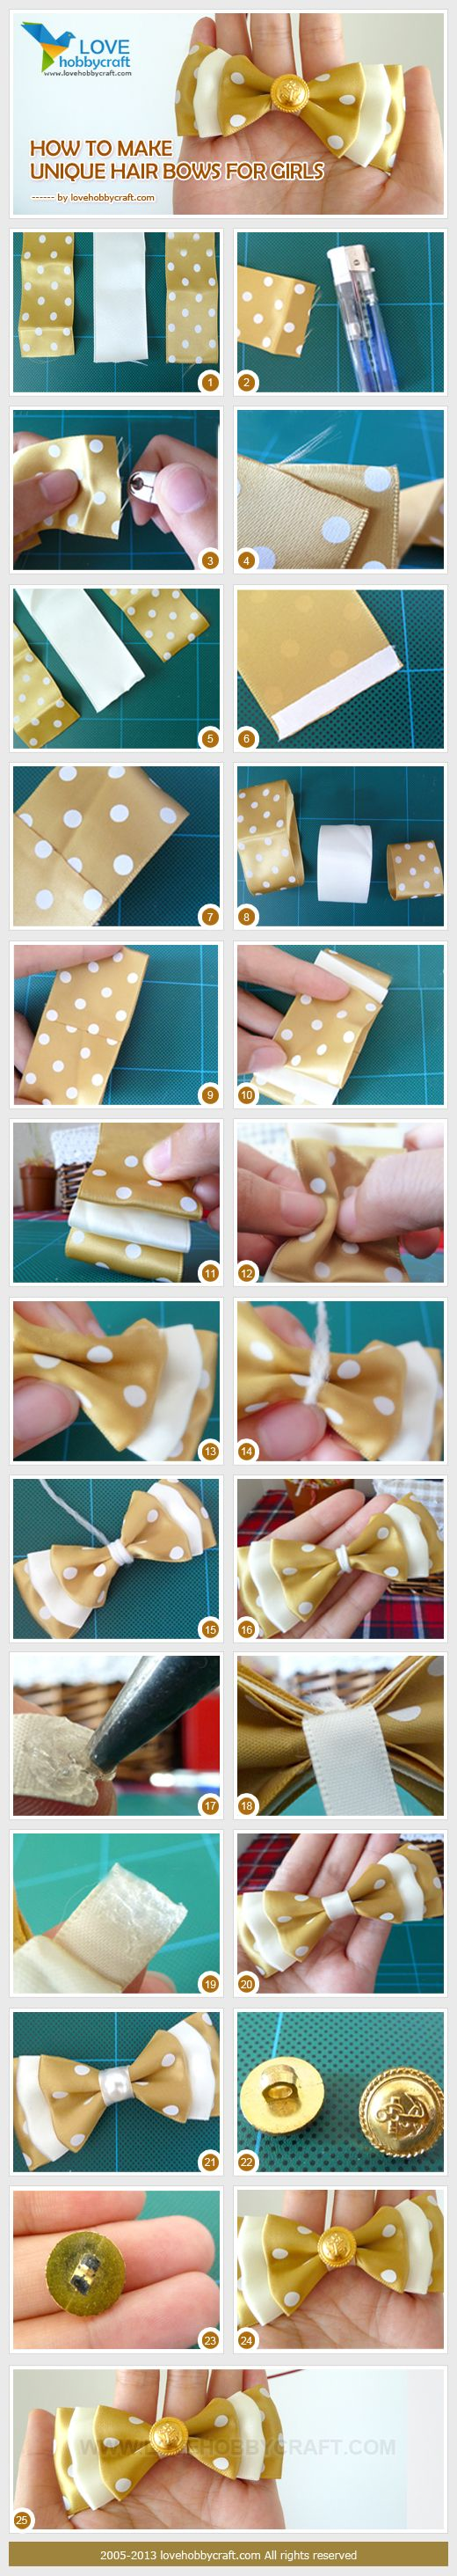 how to make unique hair bows for girls                                                                                                                                                      Mais